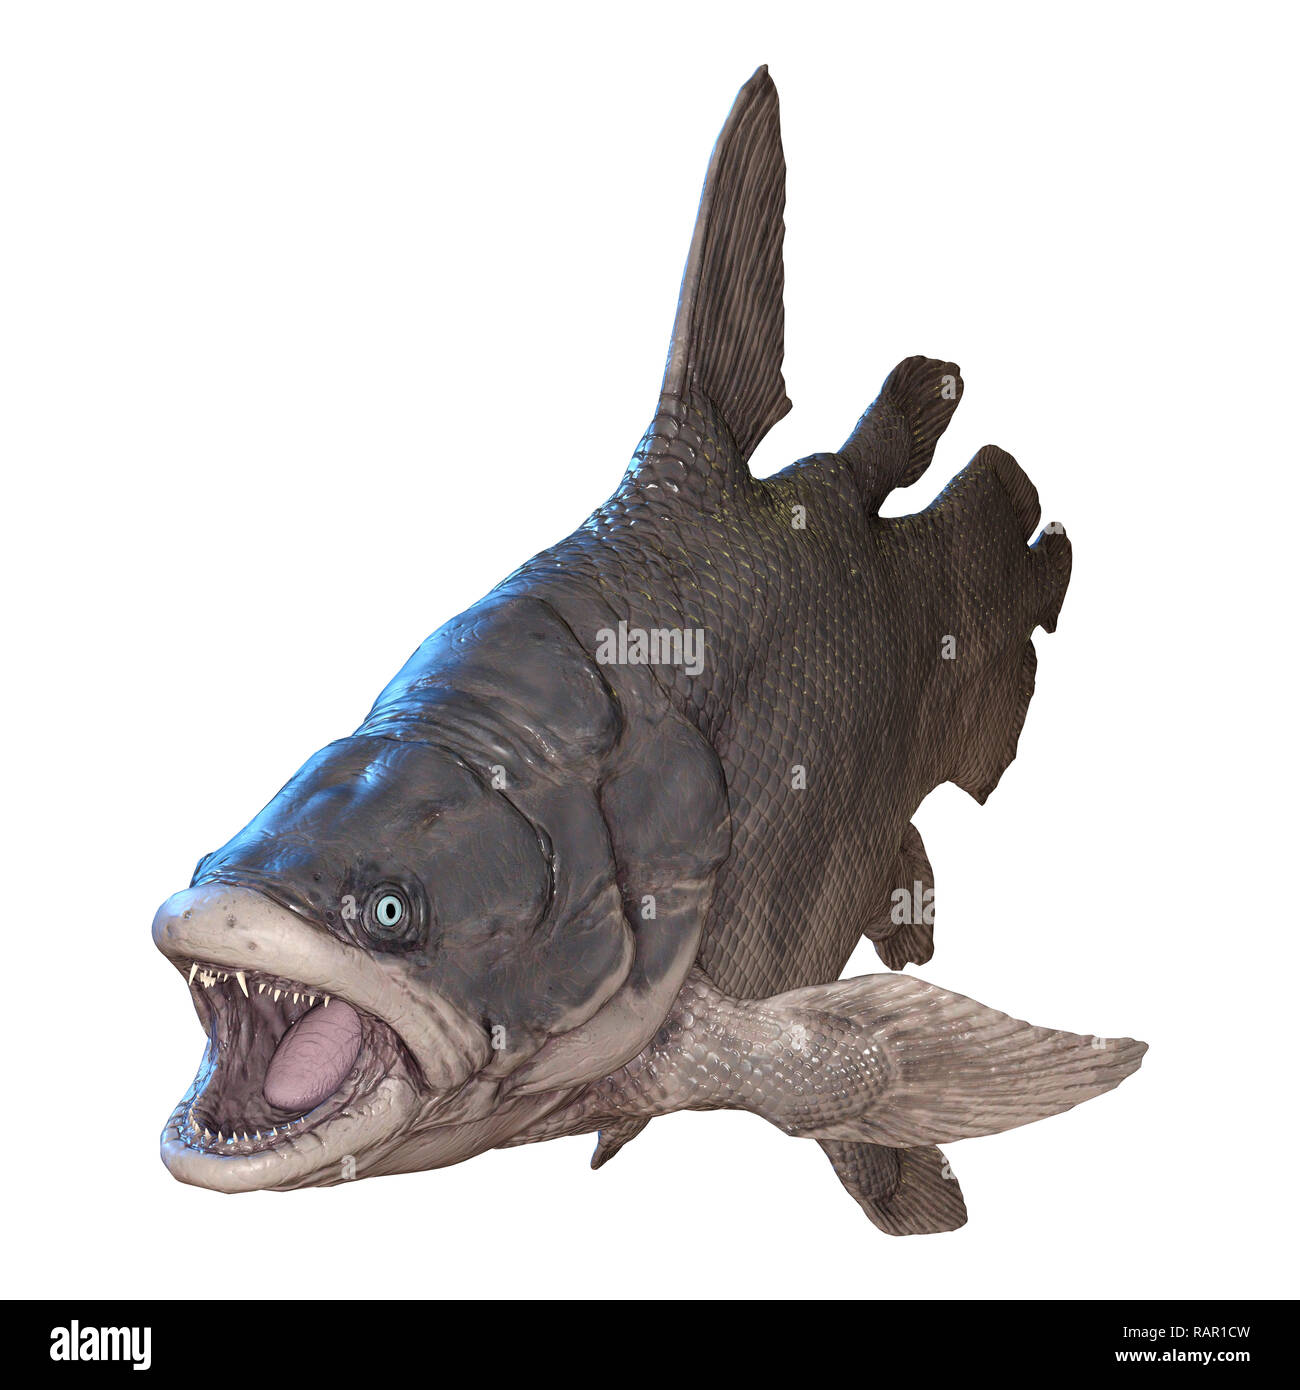 3D rendering of a Mawsonia, an extinct genus of prehistoric coelacanth fish isolated on white background - Stock Image